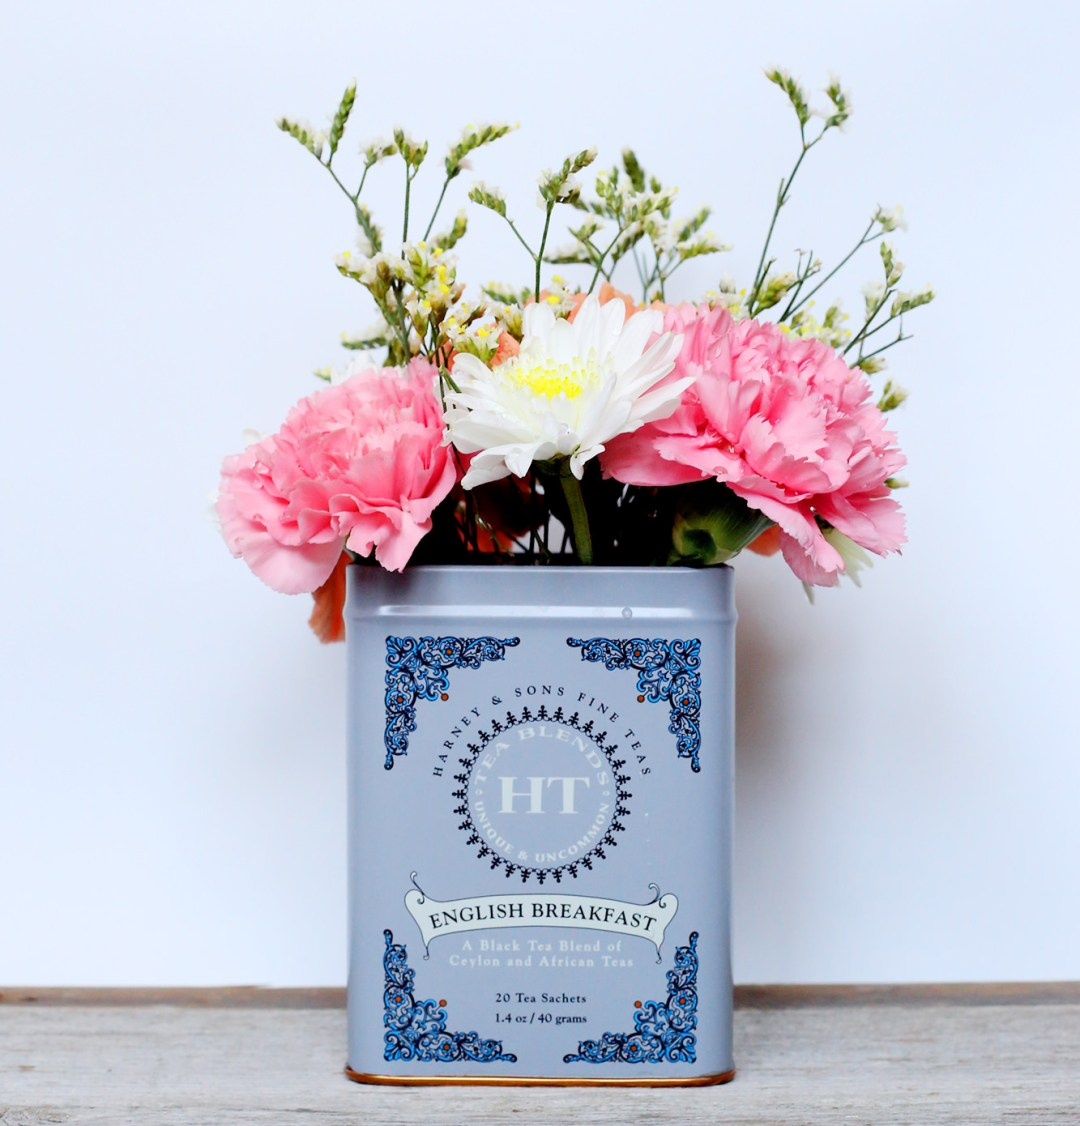 Upcycling tea tins is essential to making your space extra-cozy this winter!